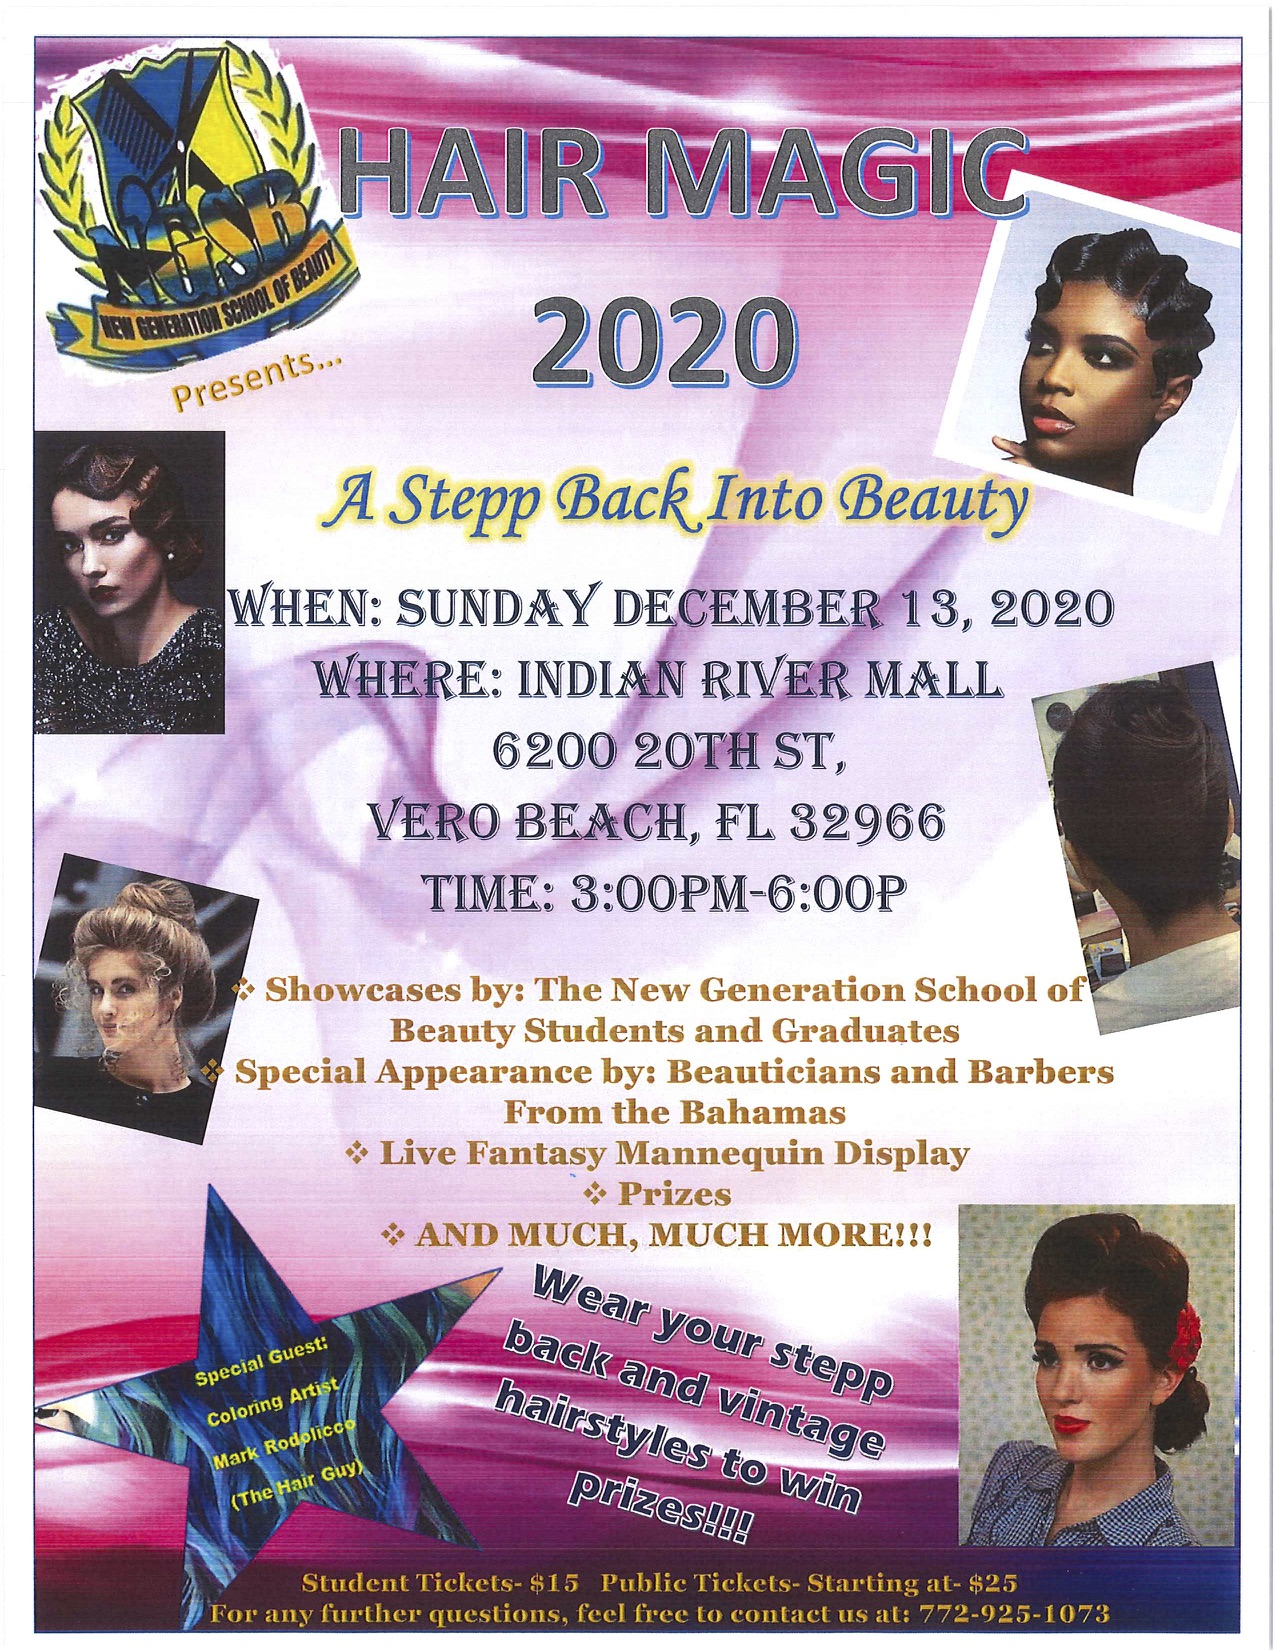 Hair Magic 2020 Show on December 19 at Indian River Mall